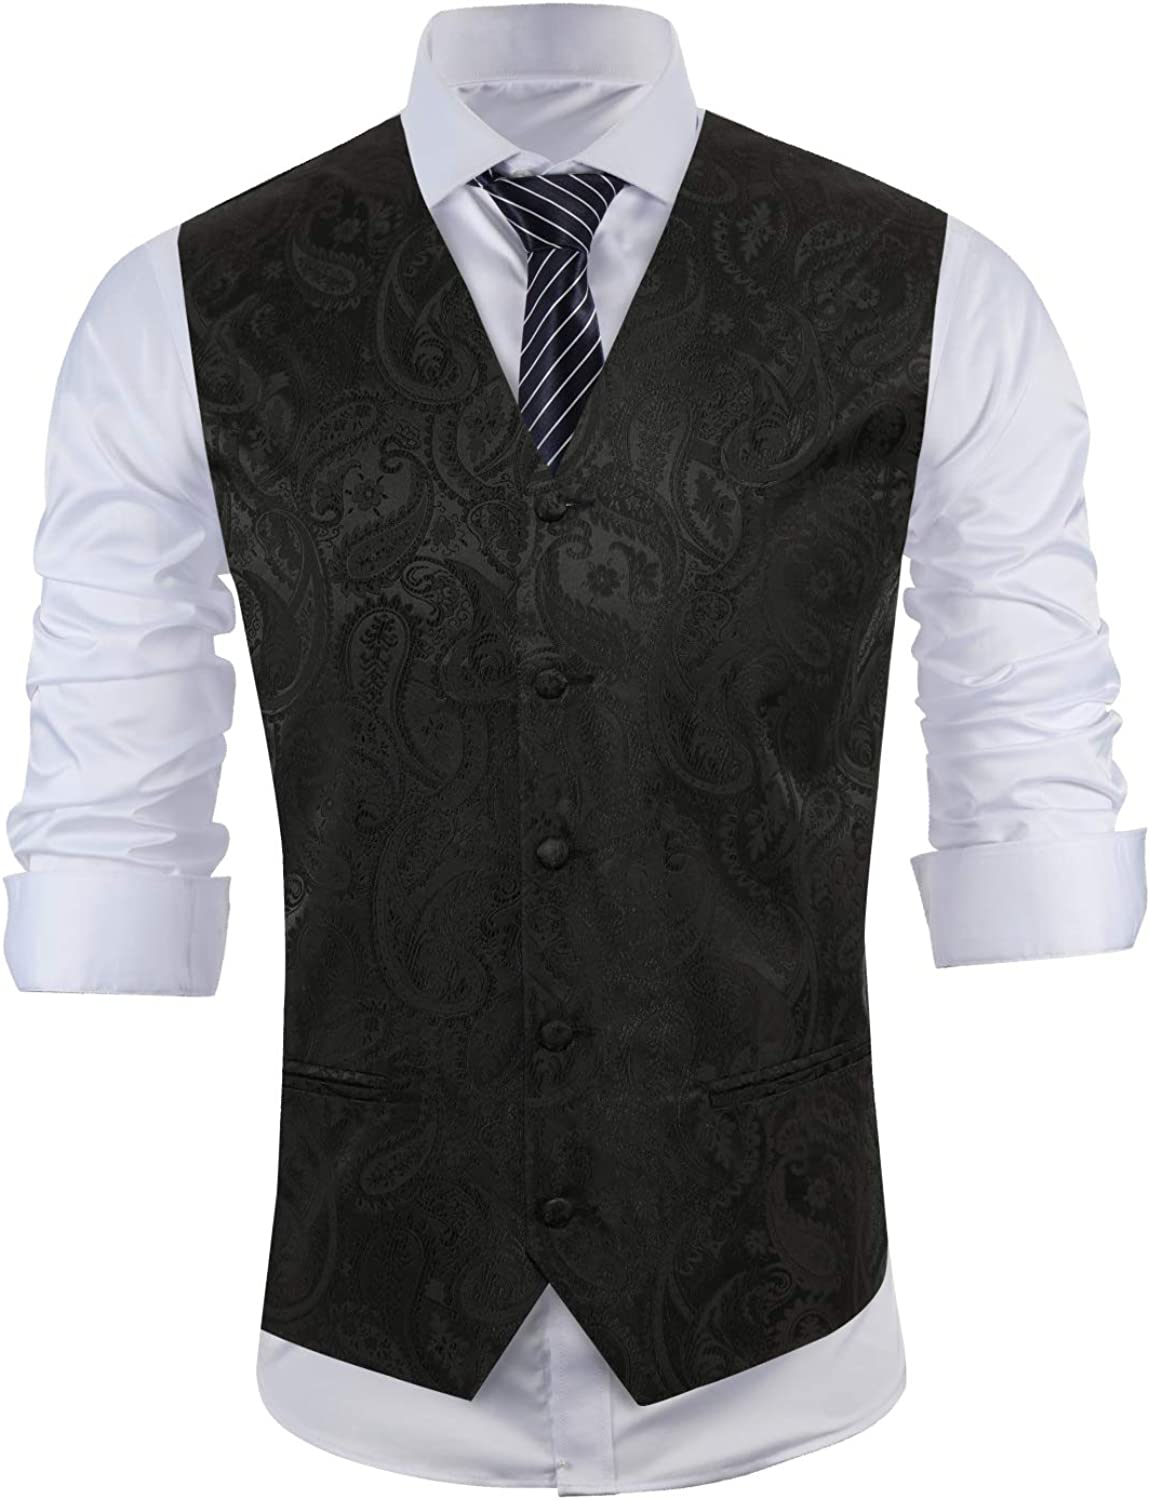 MAGE MALE Men's Classic Paisley Floral Jacquard Suit Vest Single Breasted V Neck Waistcoat